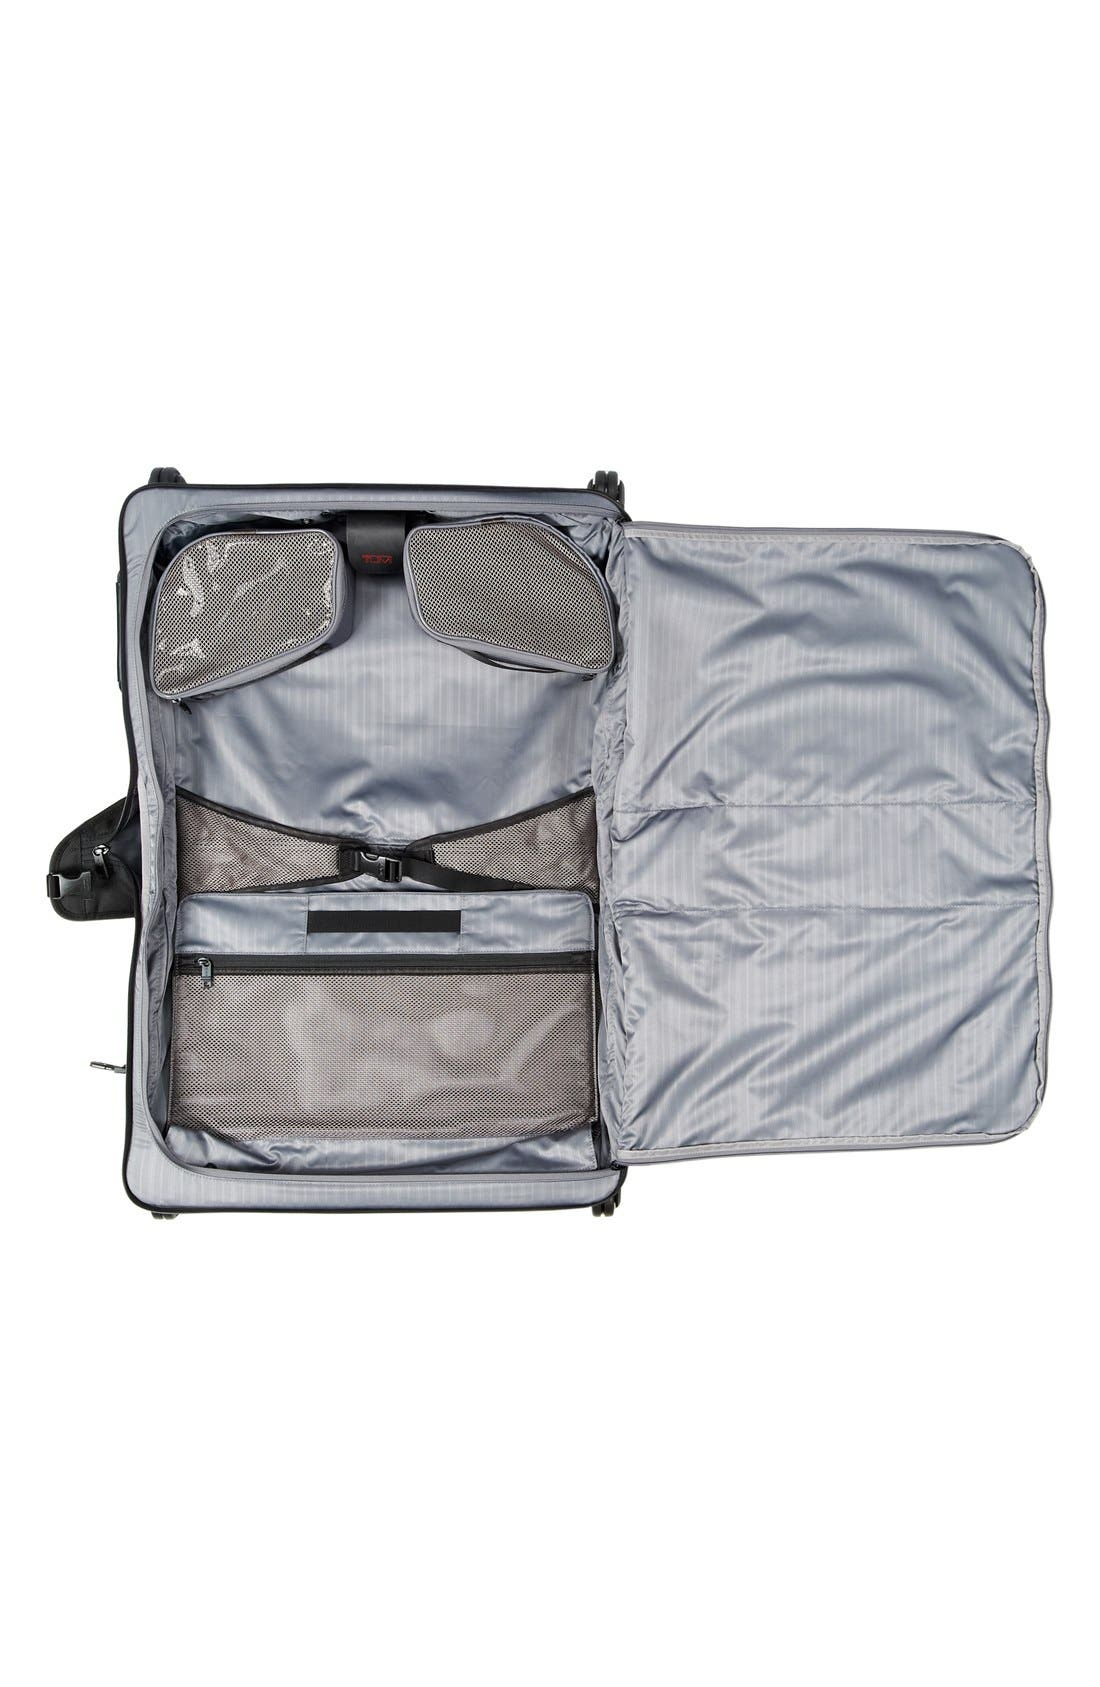 Alternate Image 2  - Tumi 'Alpha 2' Wheeled Carry-On Garment Bag (22 Inch)